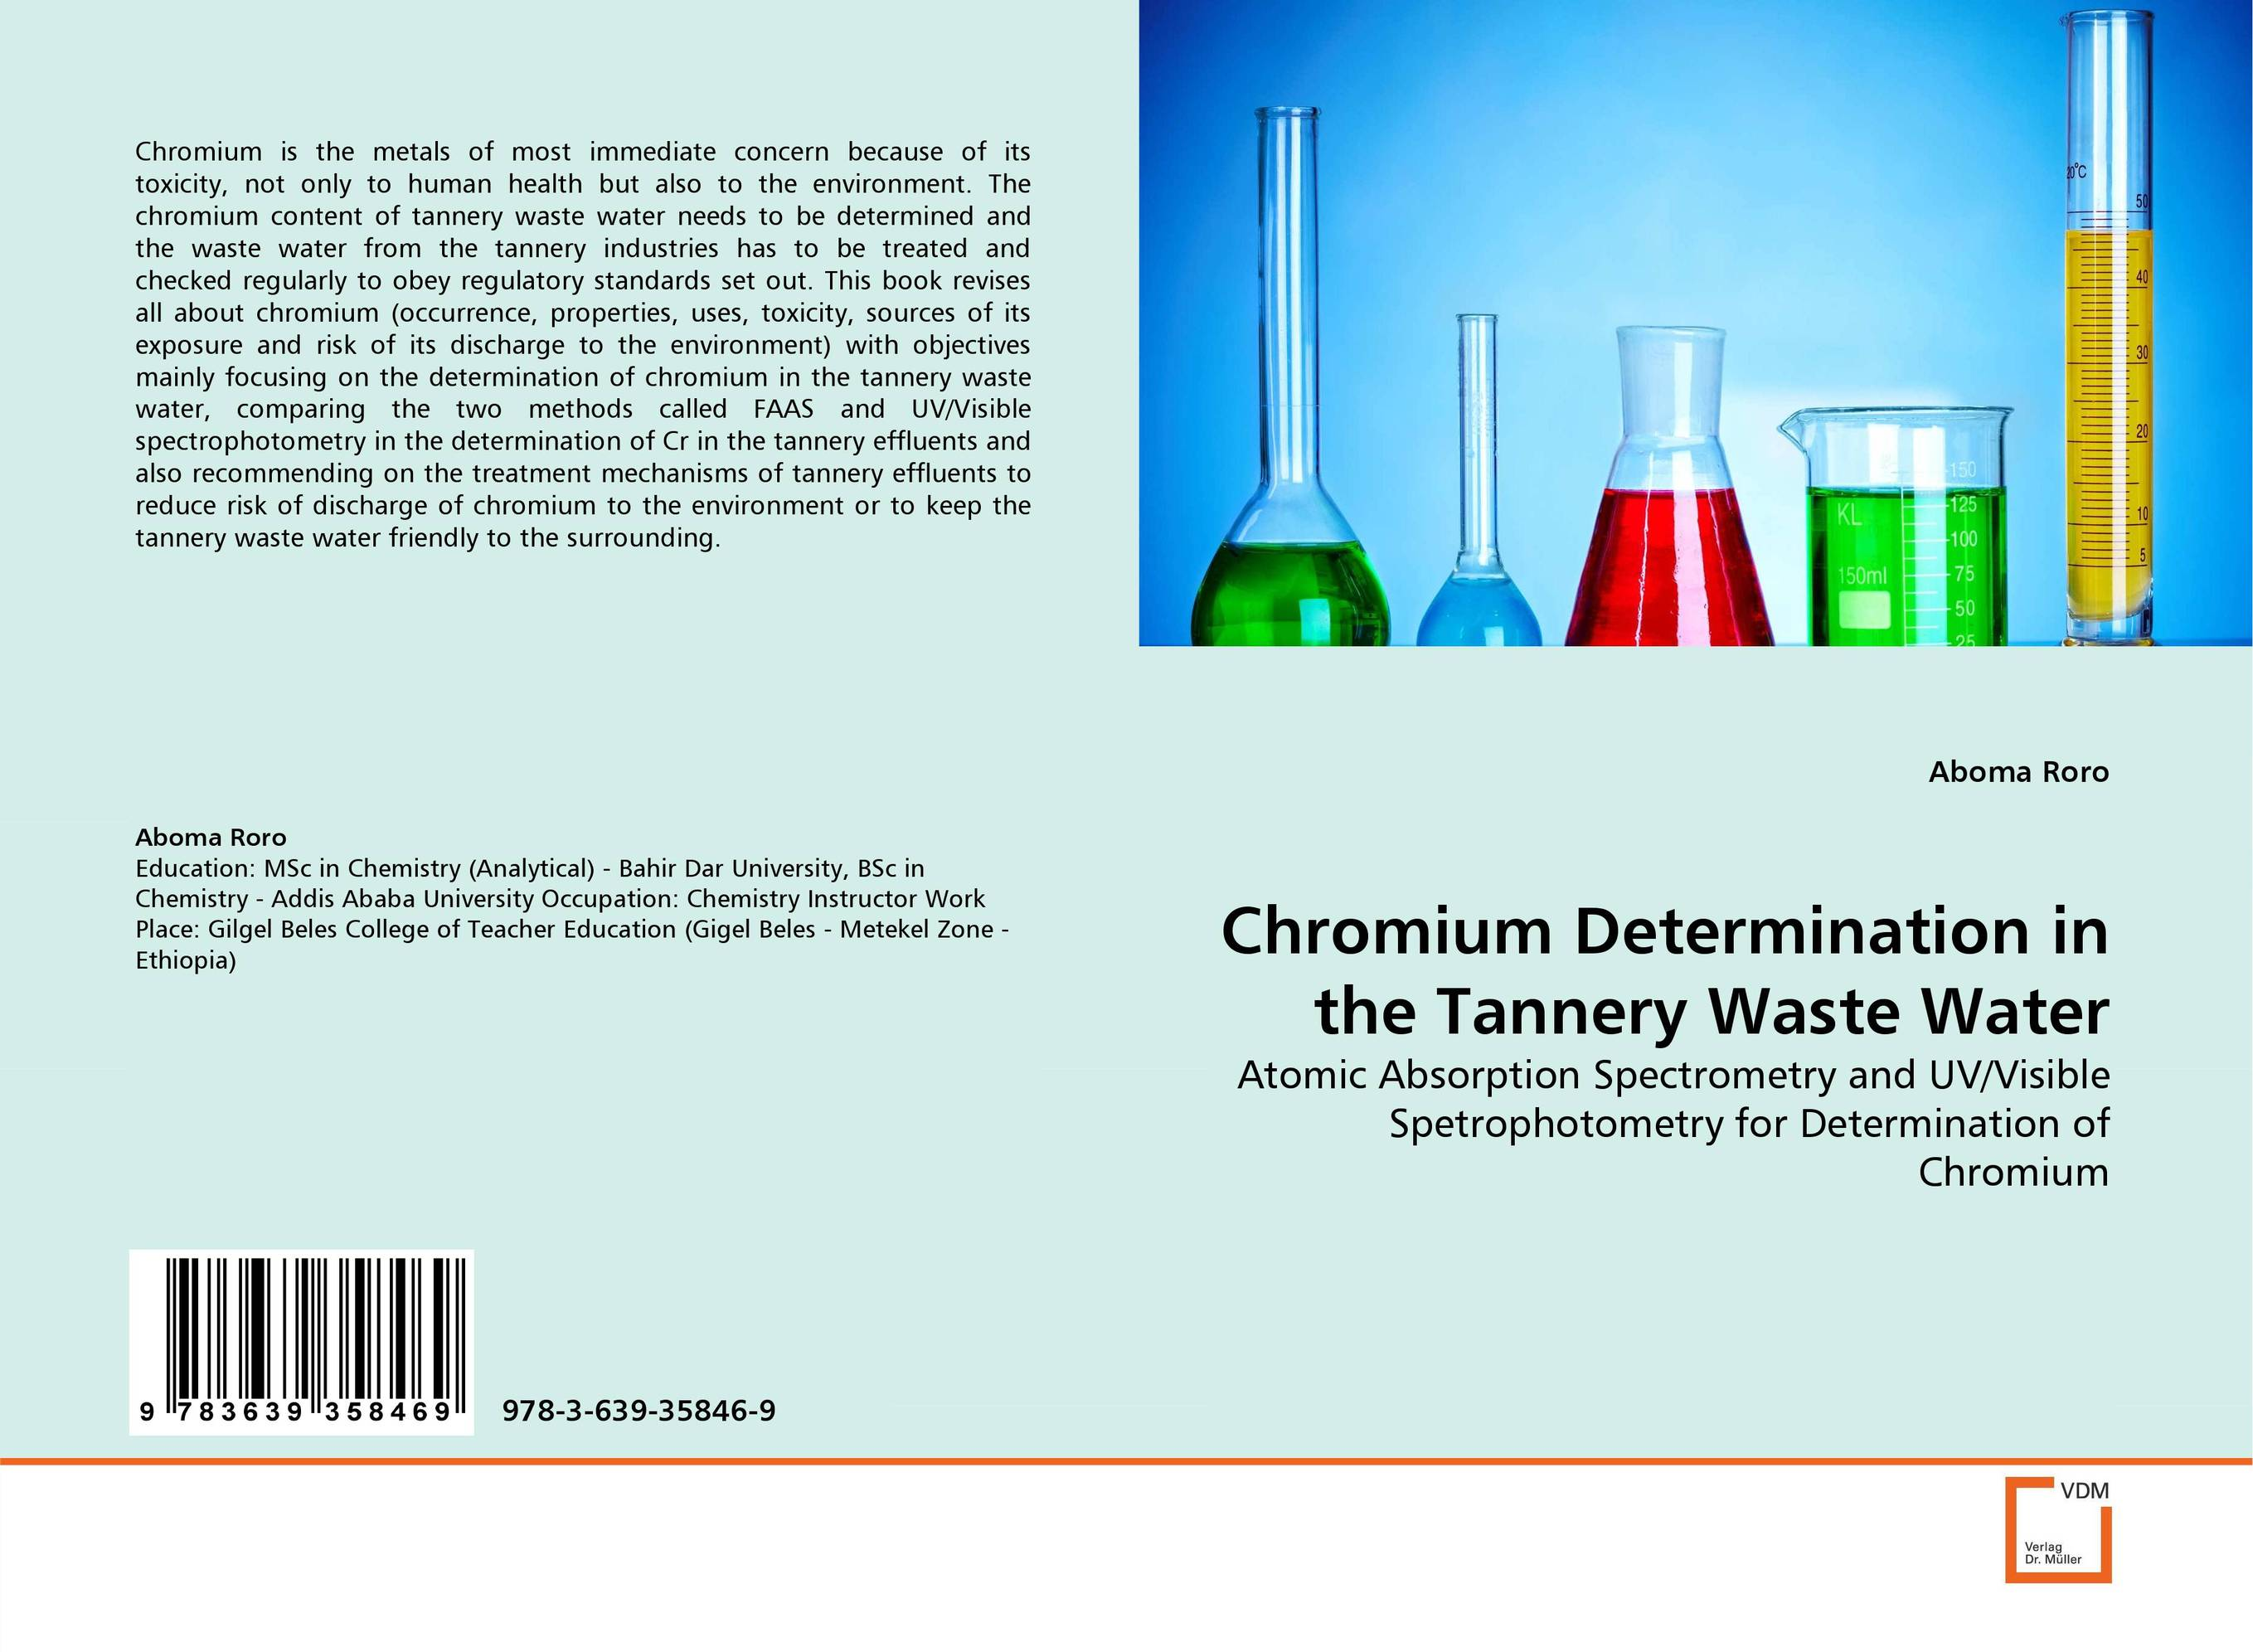 Chromium Determination in the Tannery Waste Water bride of the water god v 3